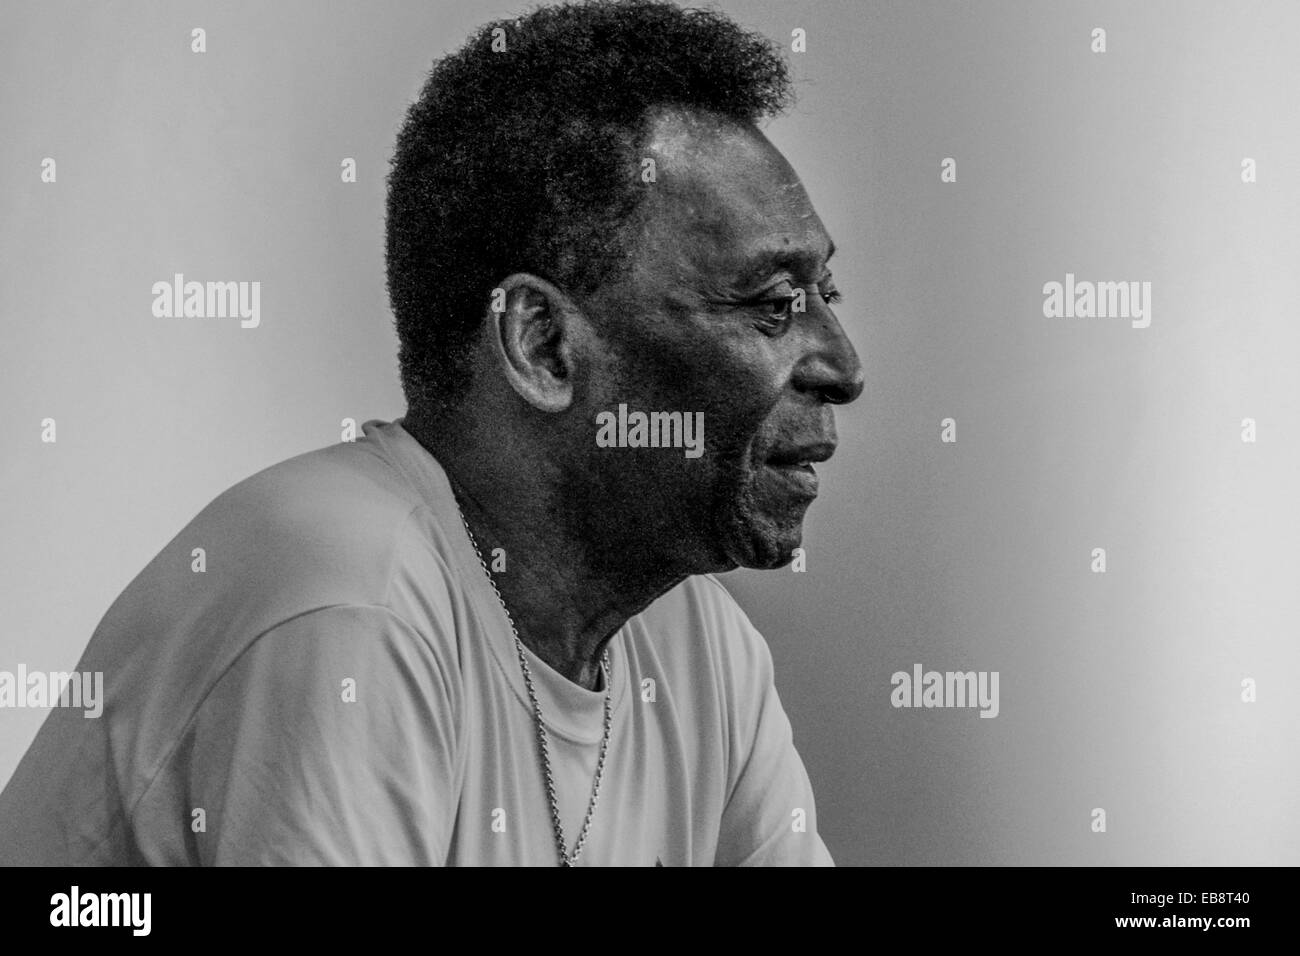 RIO DE JANEIRO, 18.06.2014. Pelé during interview in Rio de Janeiro talking about World Cup, health and his - Stock Image